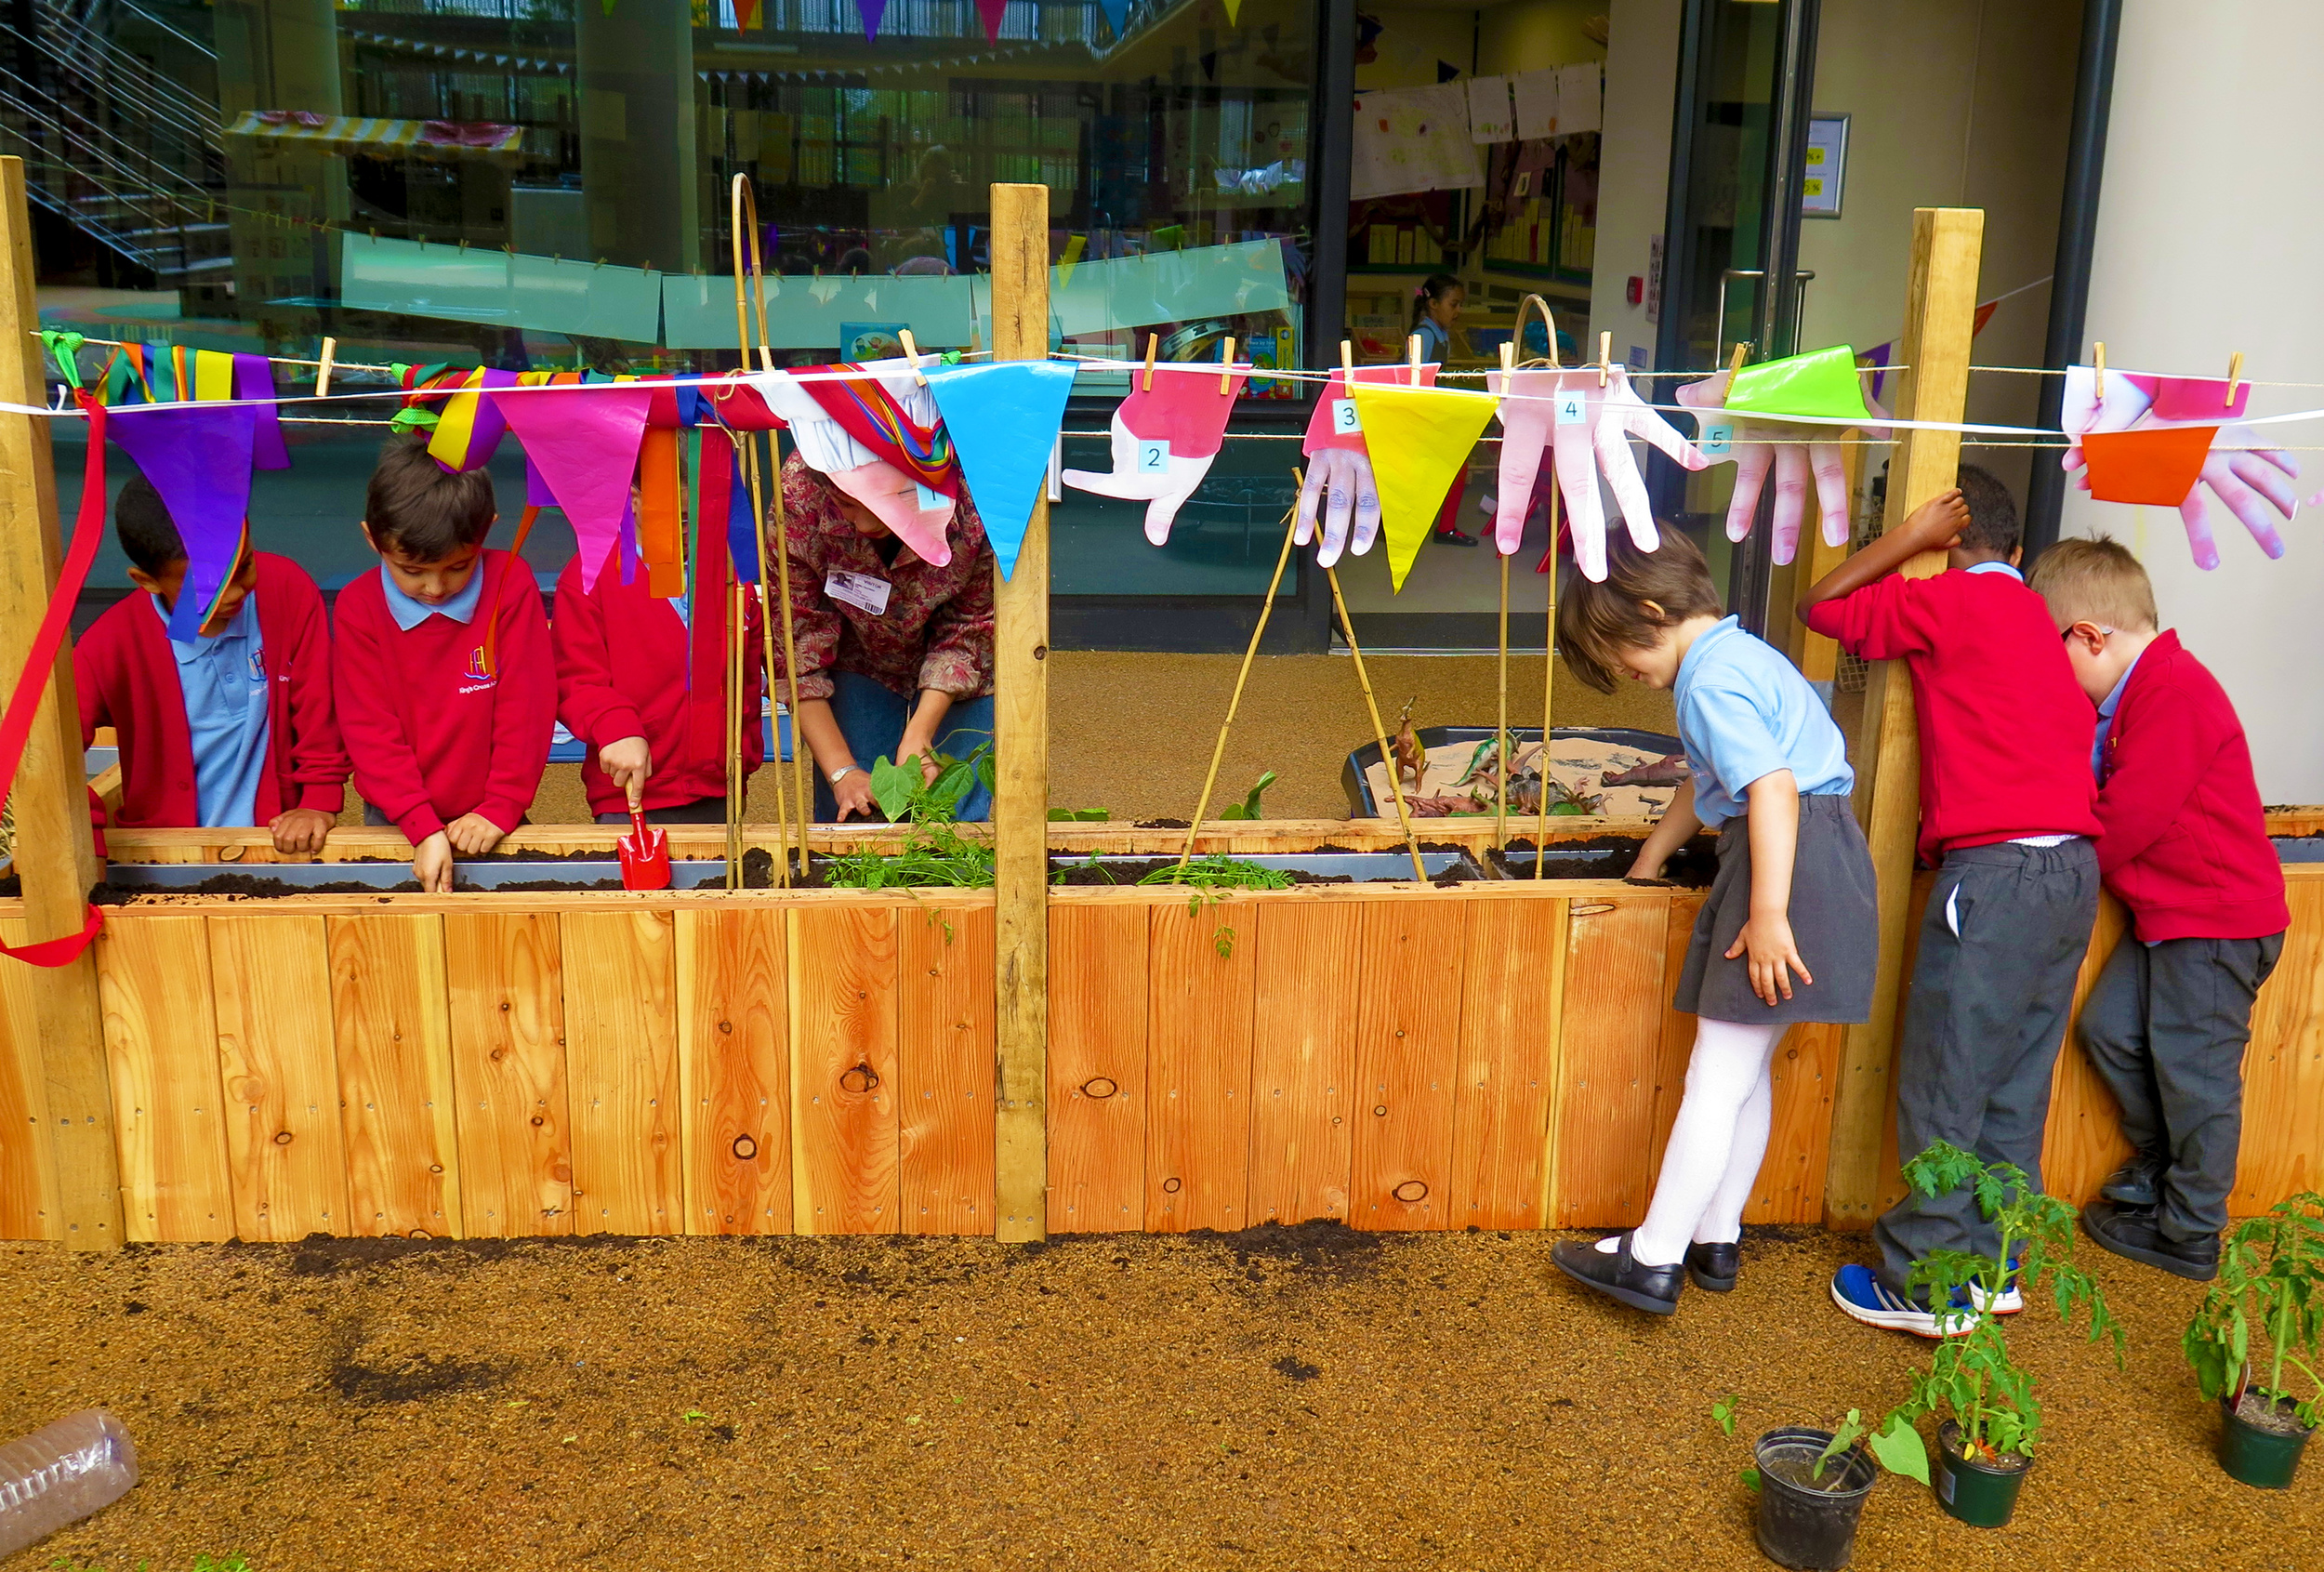 The King's Cross pupils planting their first plants in their new school garden.